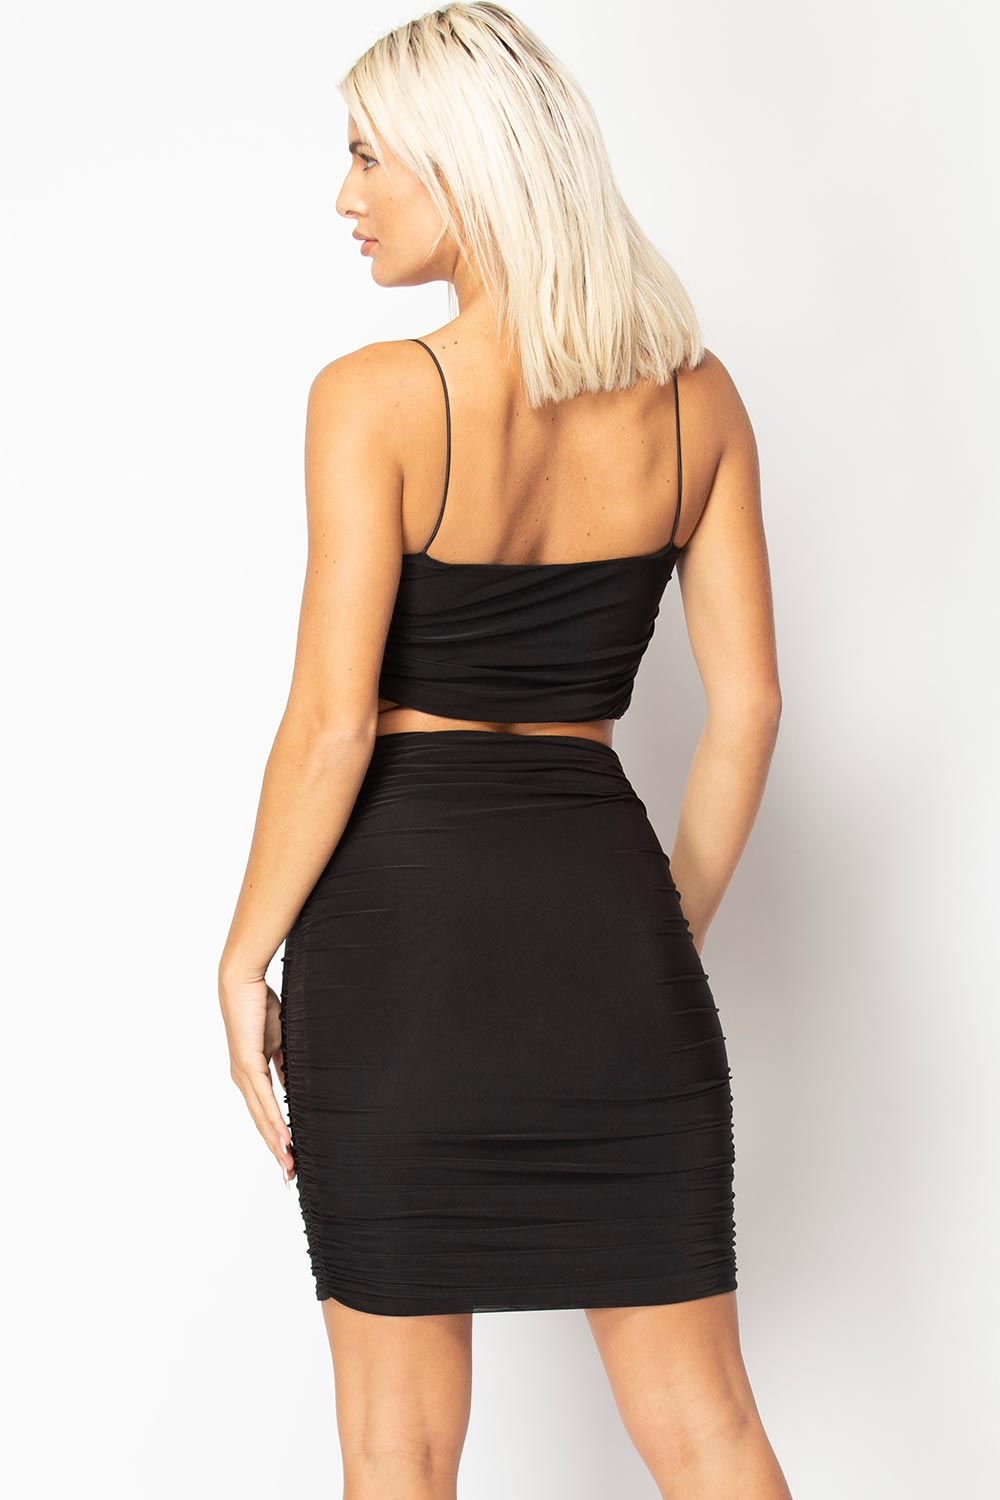 black crop top and skirt set